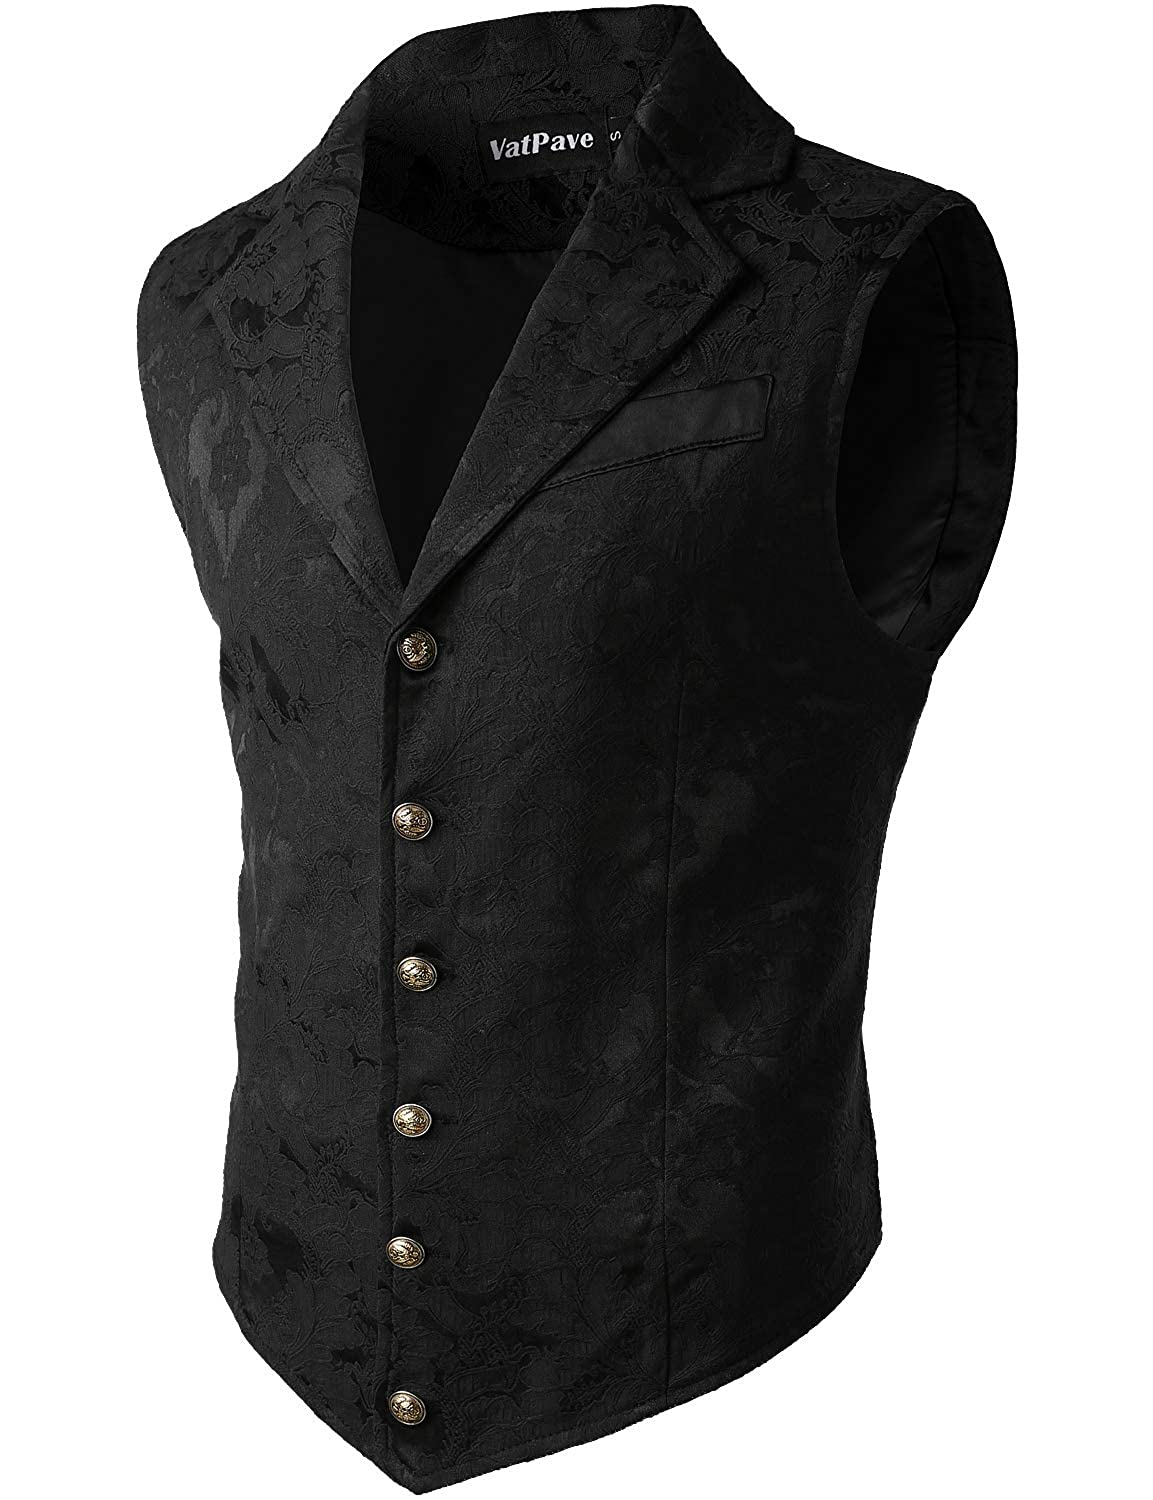 Victorian Men's Clothing, Fashion – 1840 to 1890s VATPAVE Mens Victorian Suit Vest Steampunk Gothic Waistcoat $32.99 AT vintagedancer.com